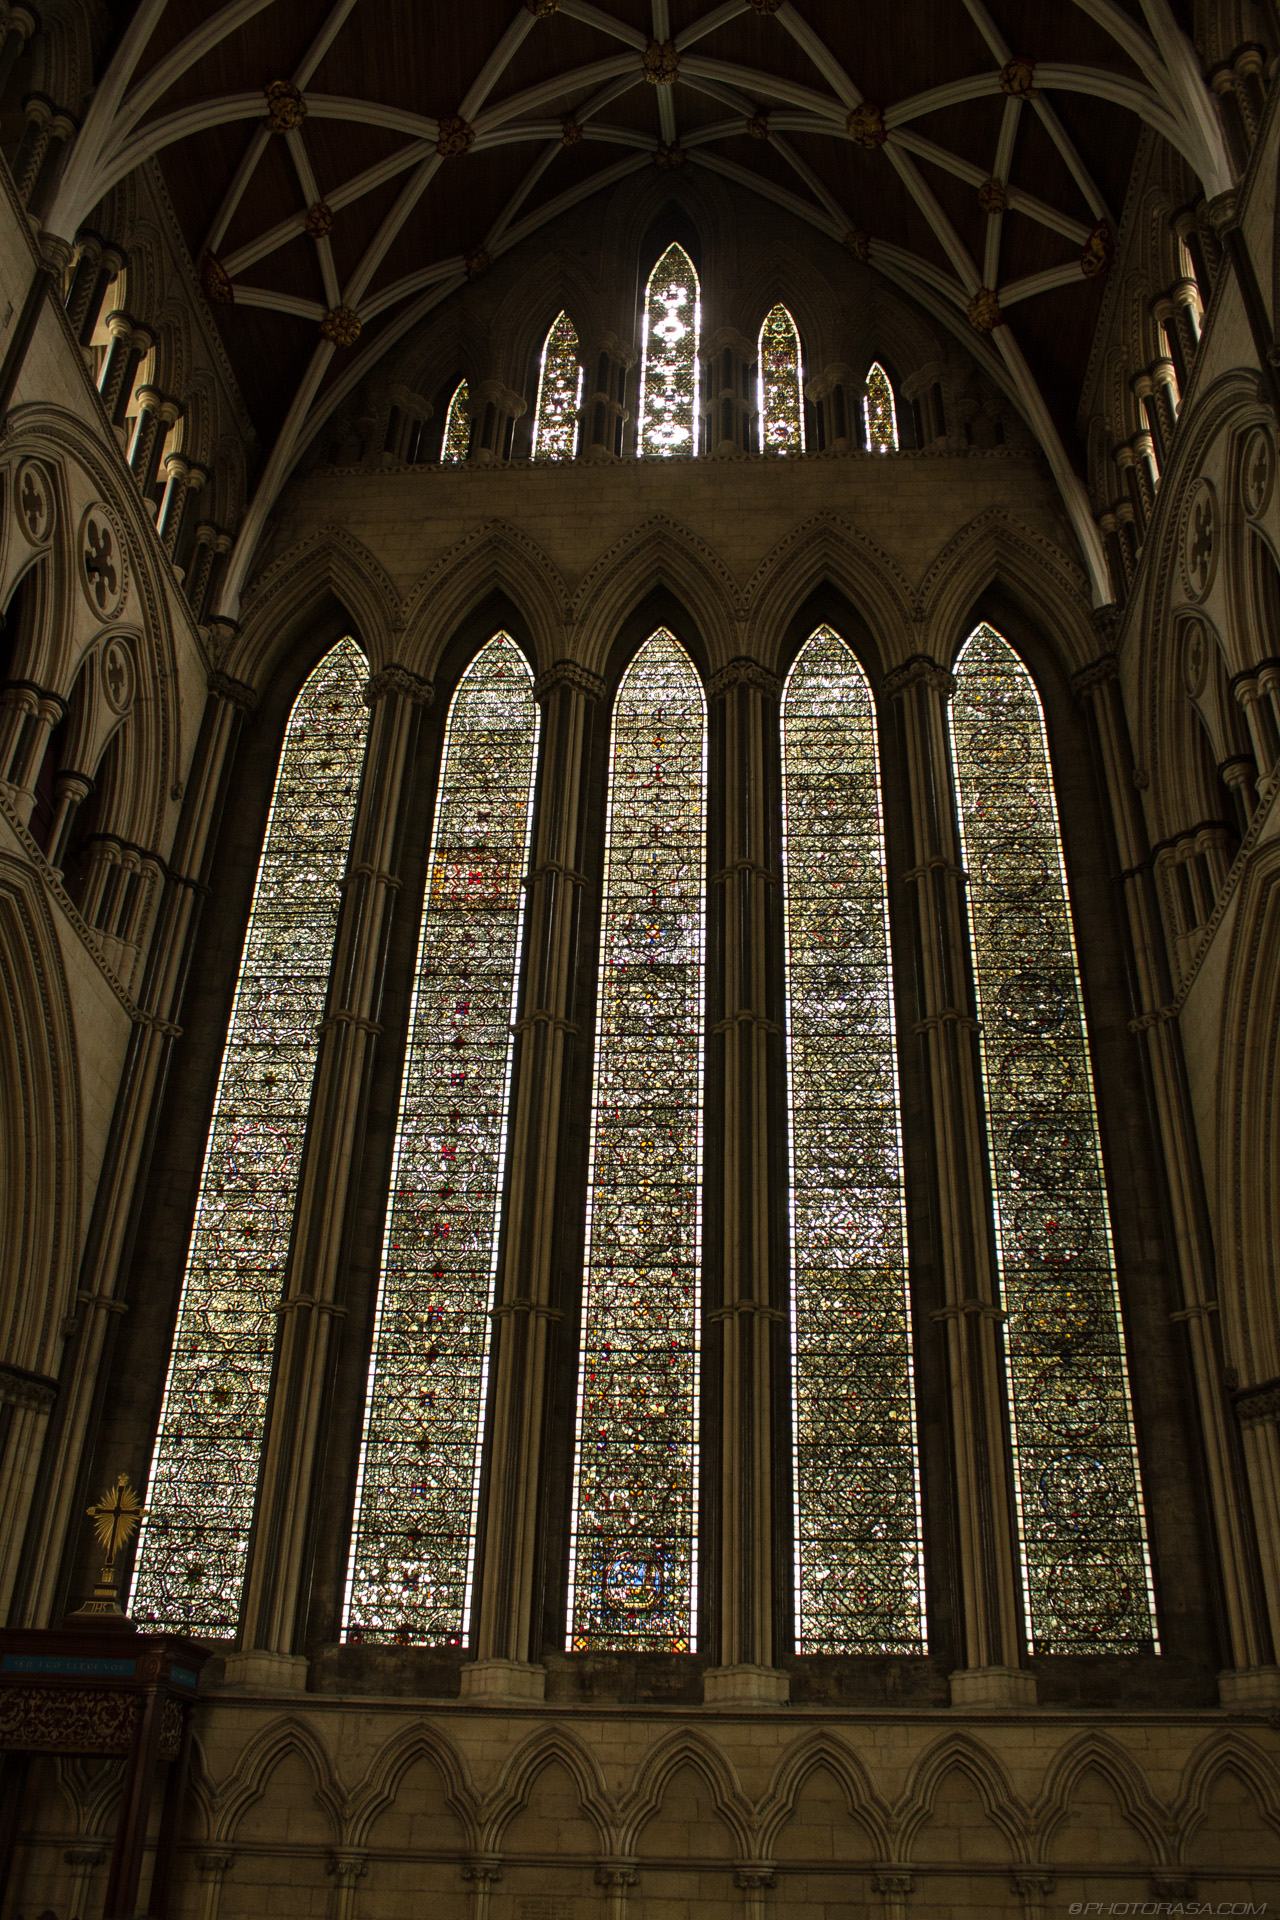 https://photorasa.com/yorkminster-cathedral/west-window/